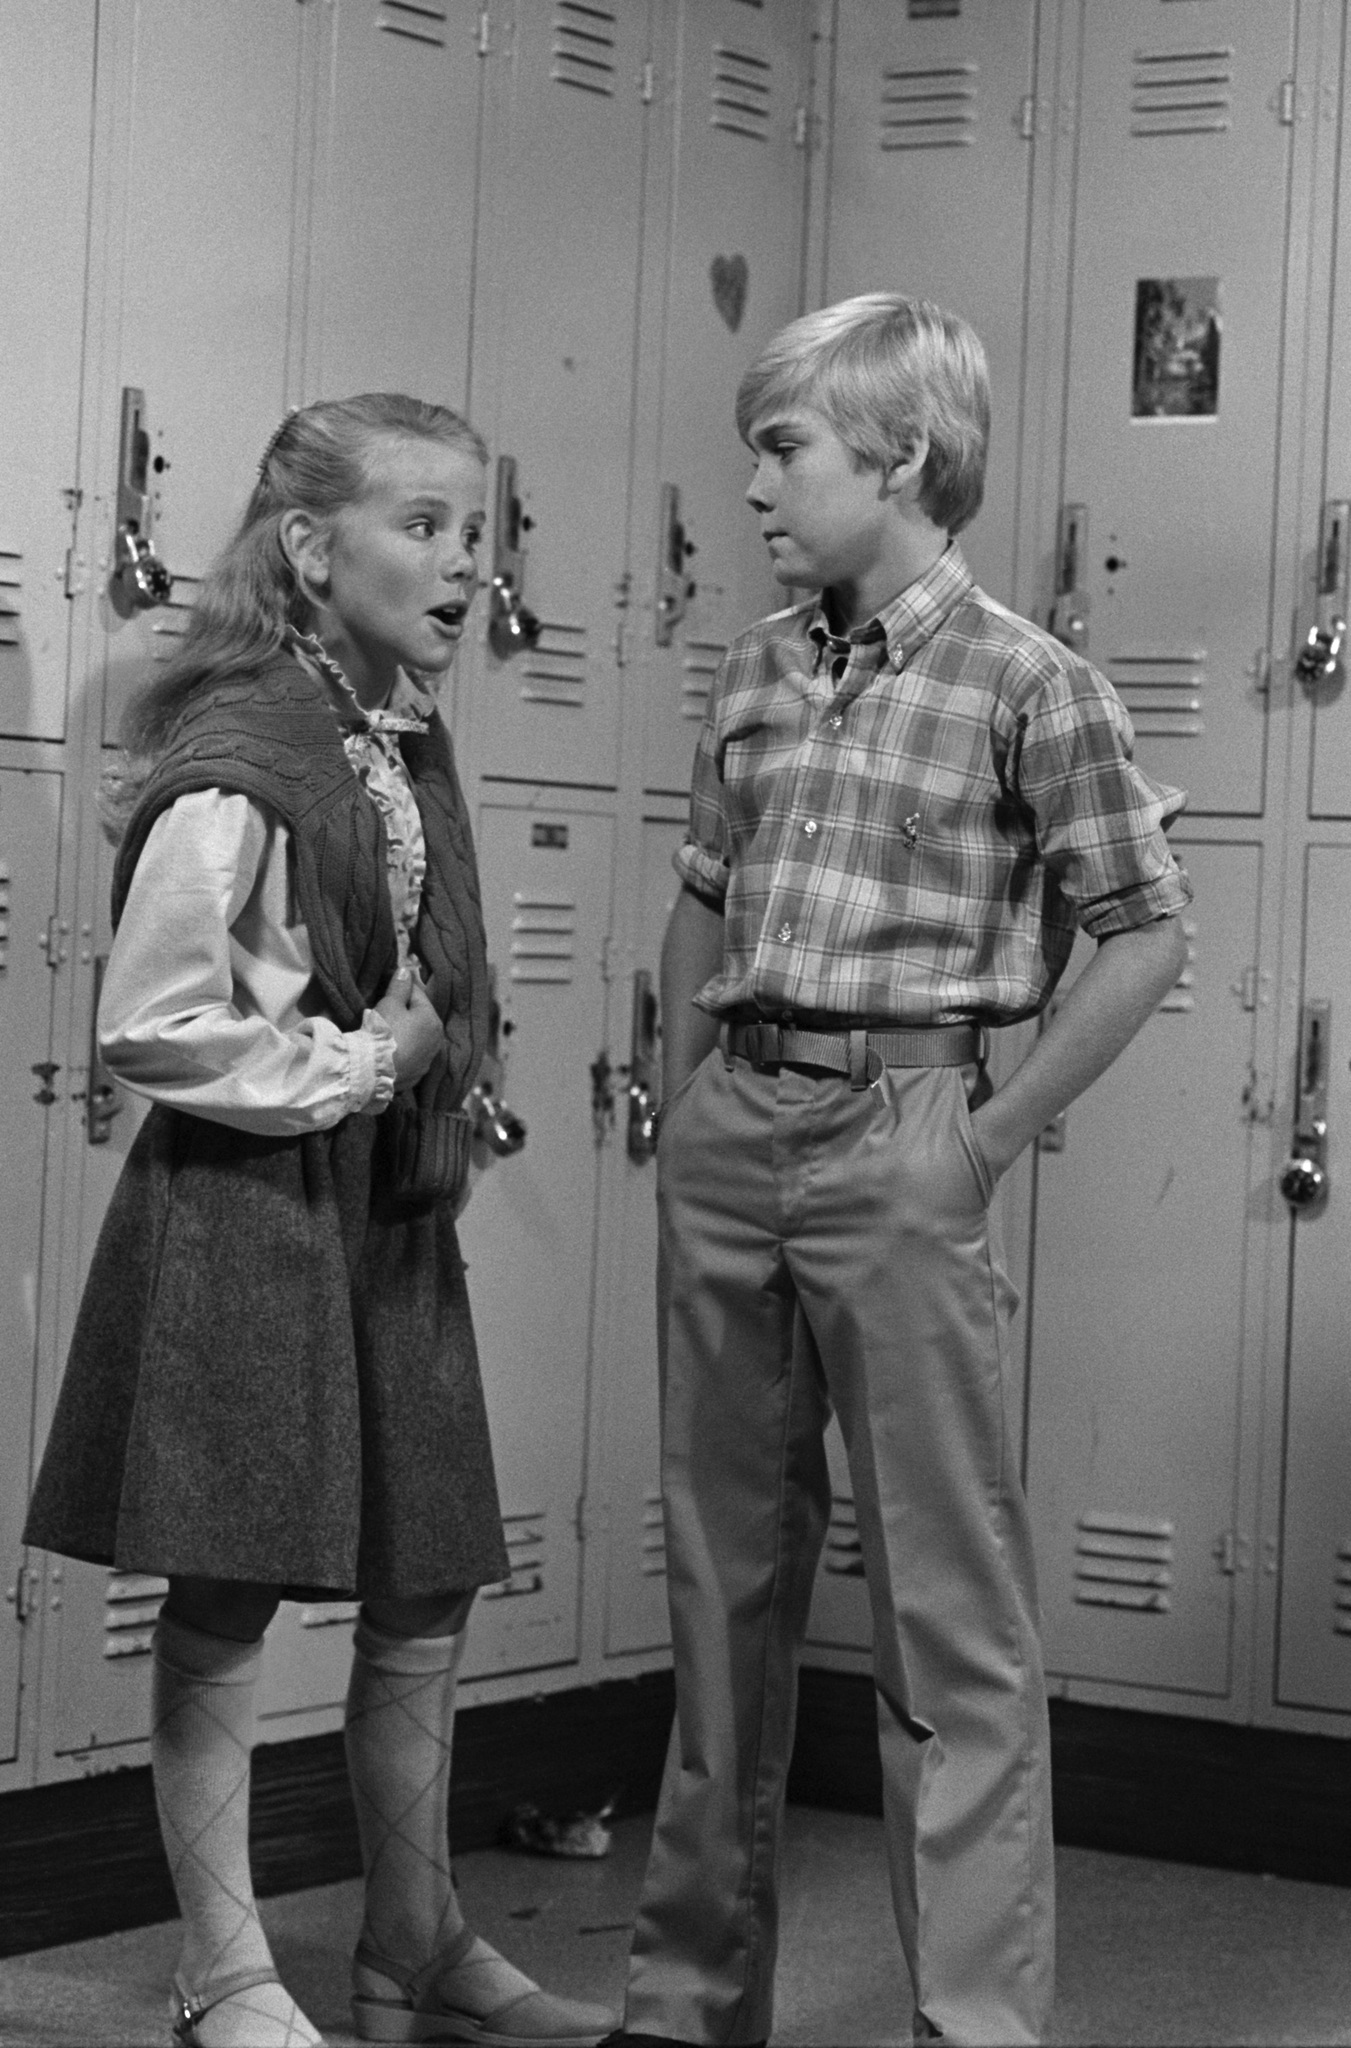 Amanda Peterson and Ricky Schroder in Silver Spoons (1982)